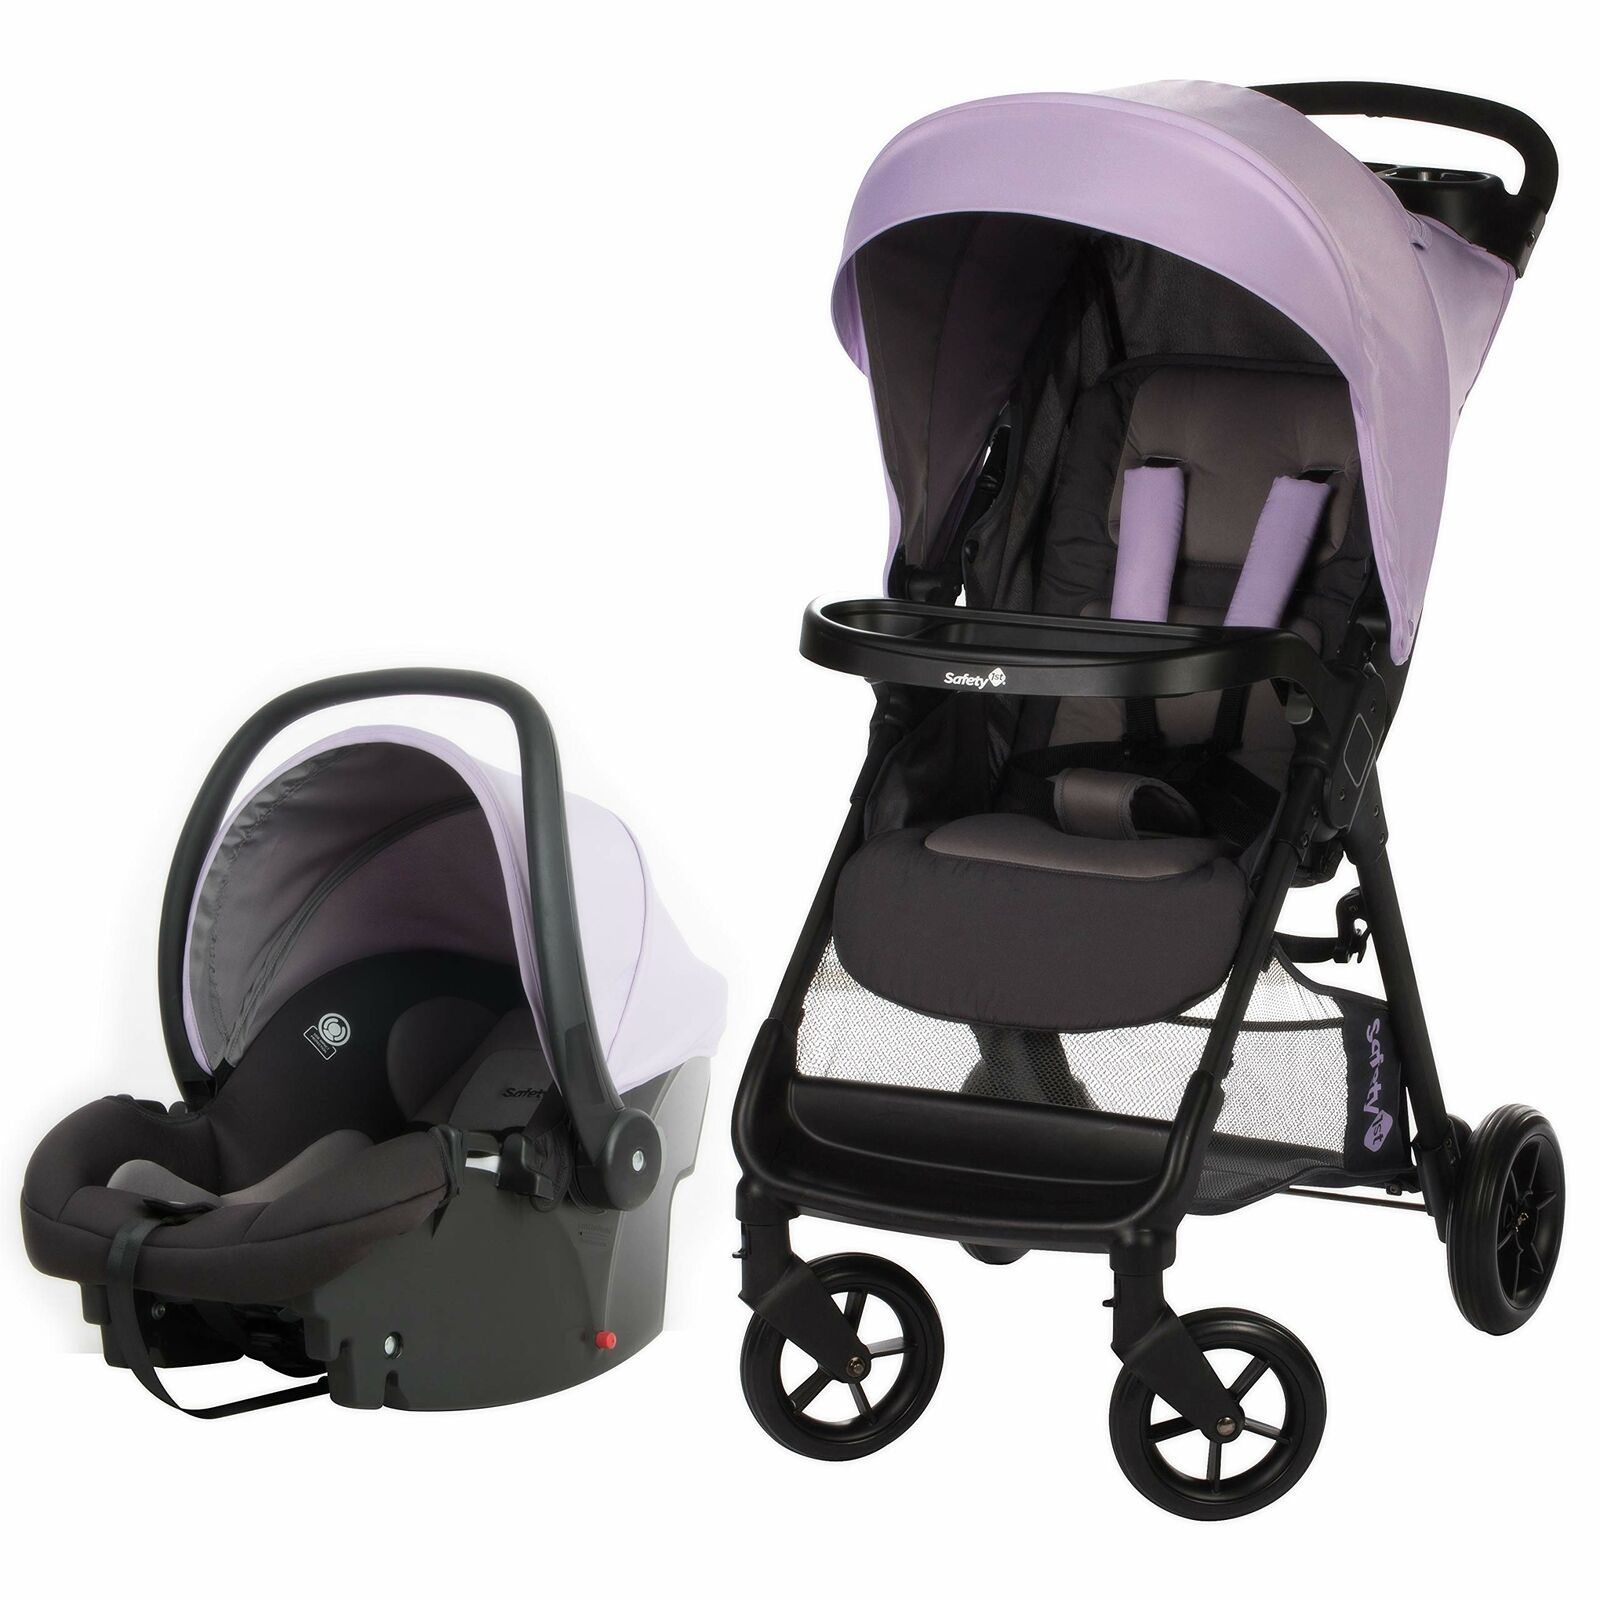 Doona Limited Edition Vacation Infant Convertible Car Seat